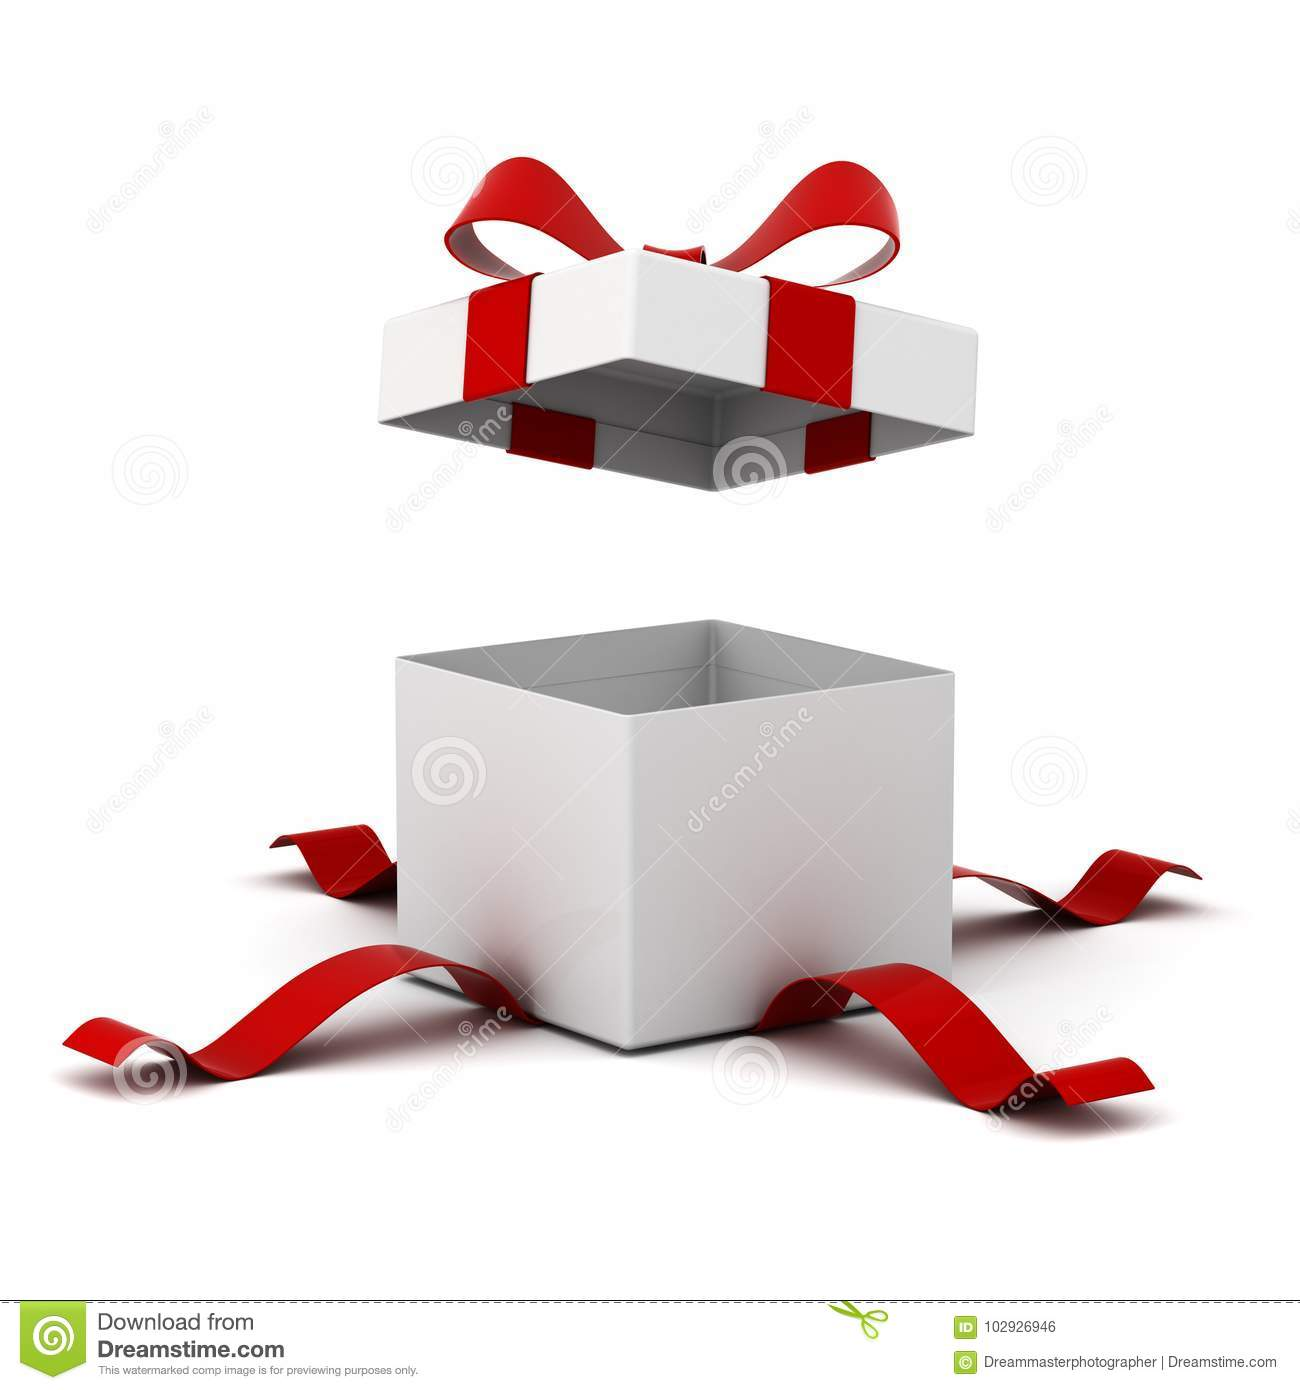 Open gift box , present box with red ribbon bow isolated on white background